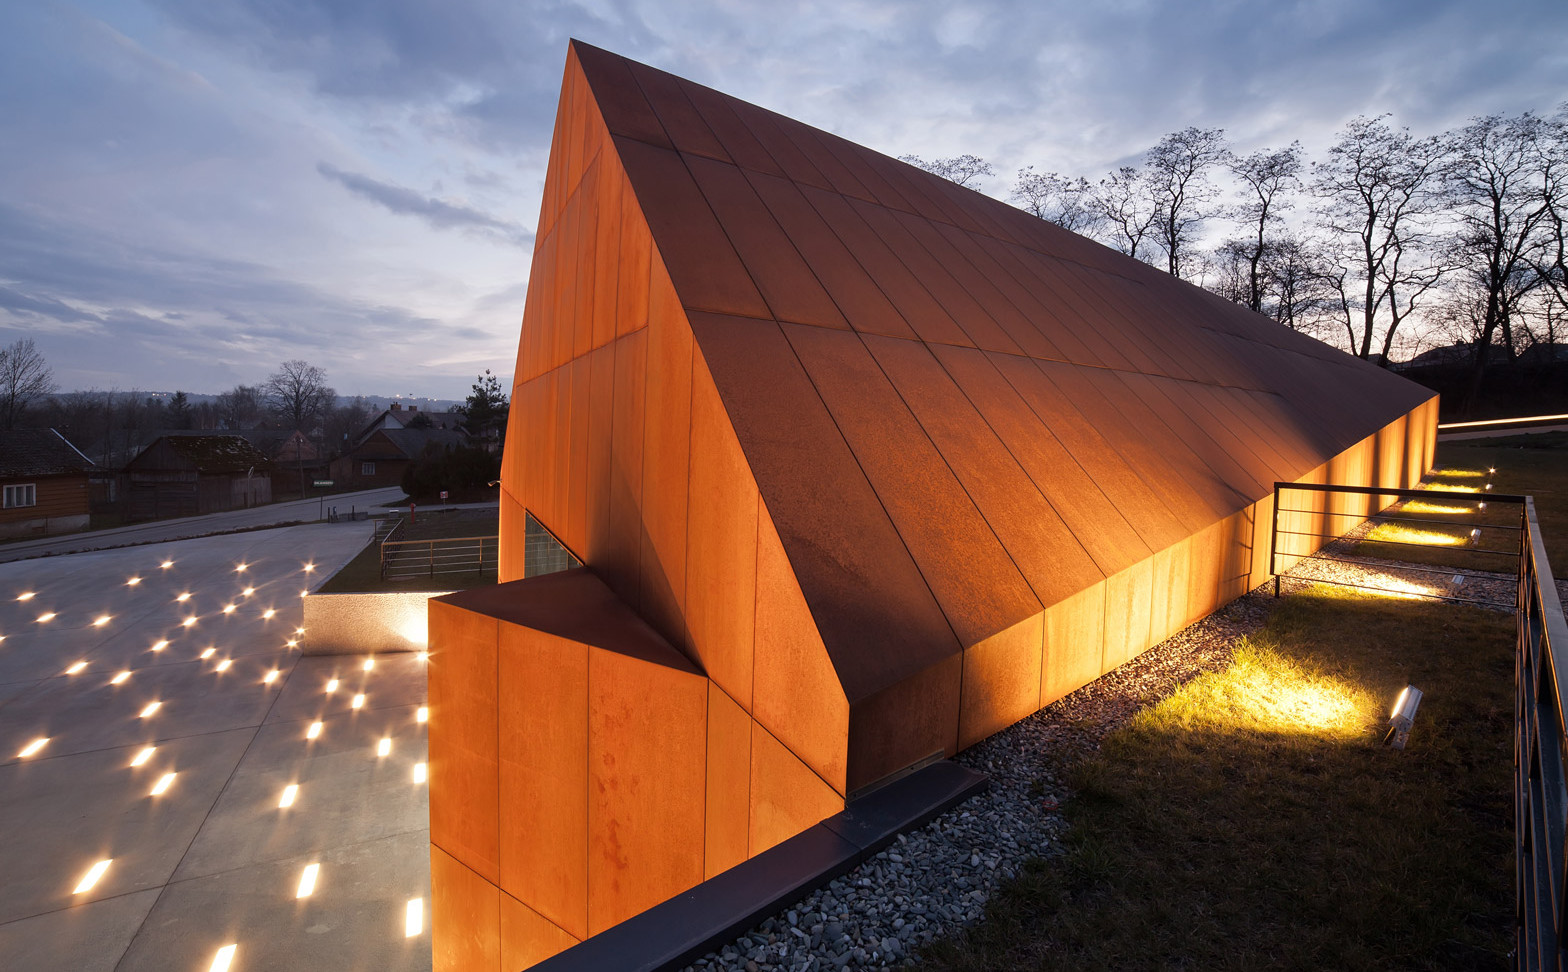 the-ulma-family-museum-nizio-design-poles-saving-jews-markowa-poland_dezeen_1568_9